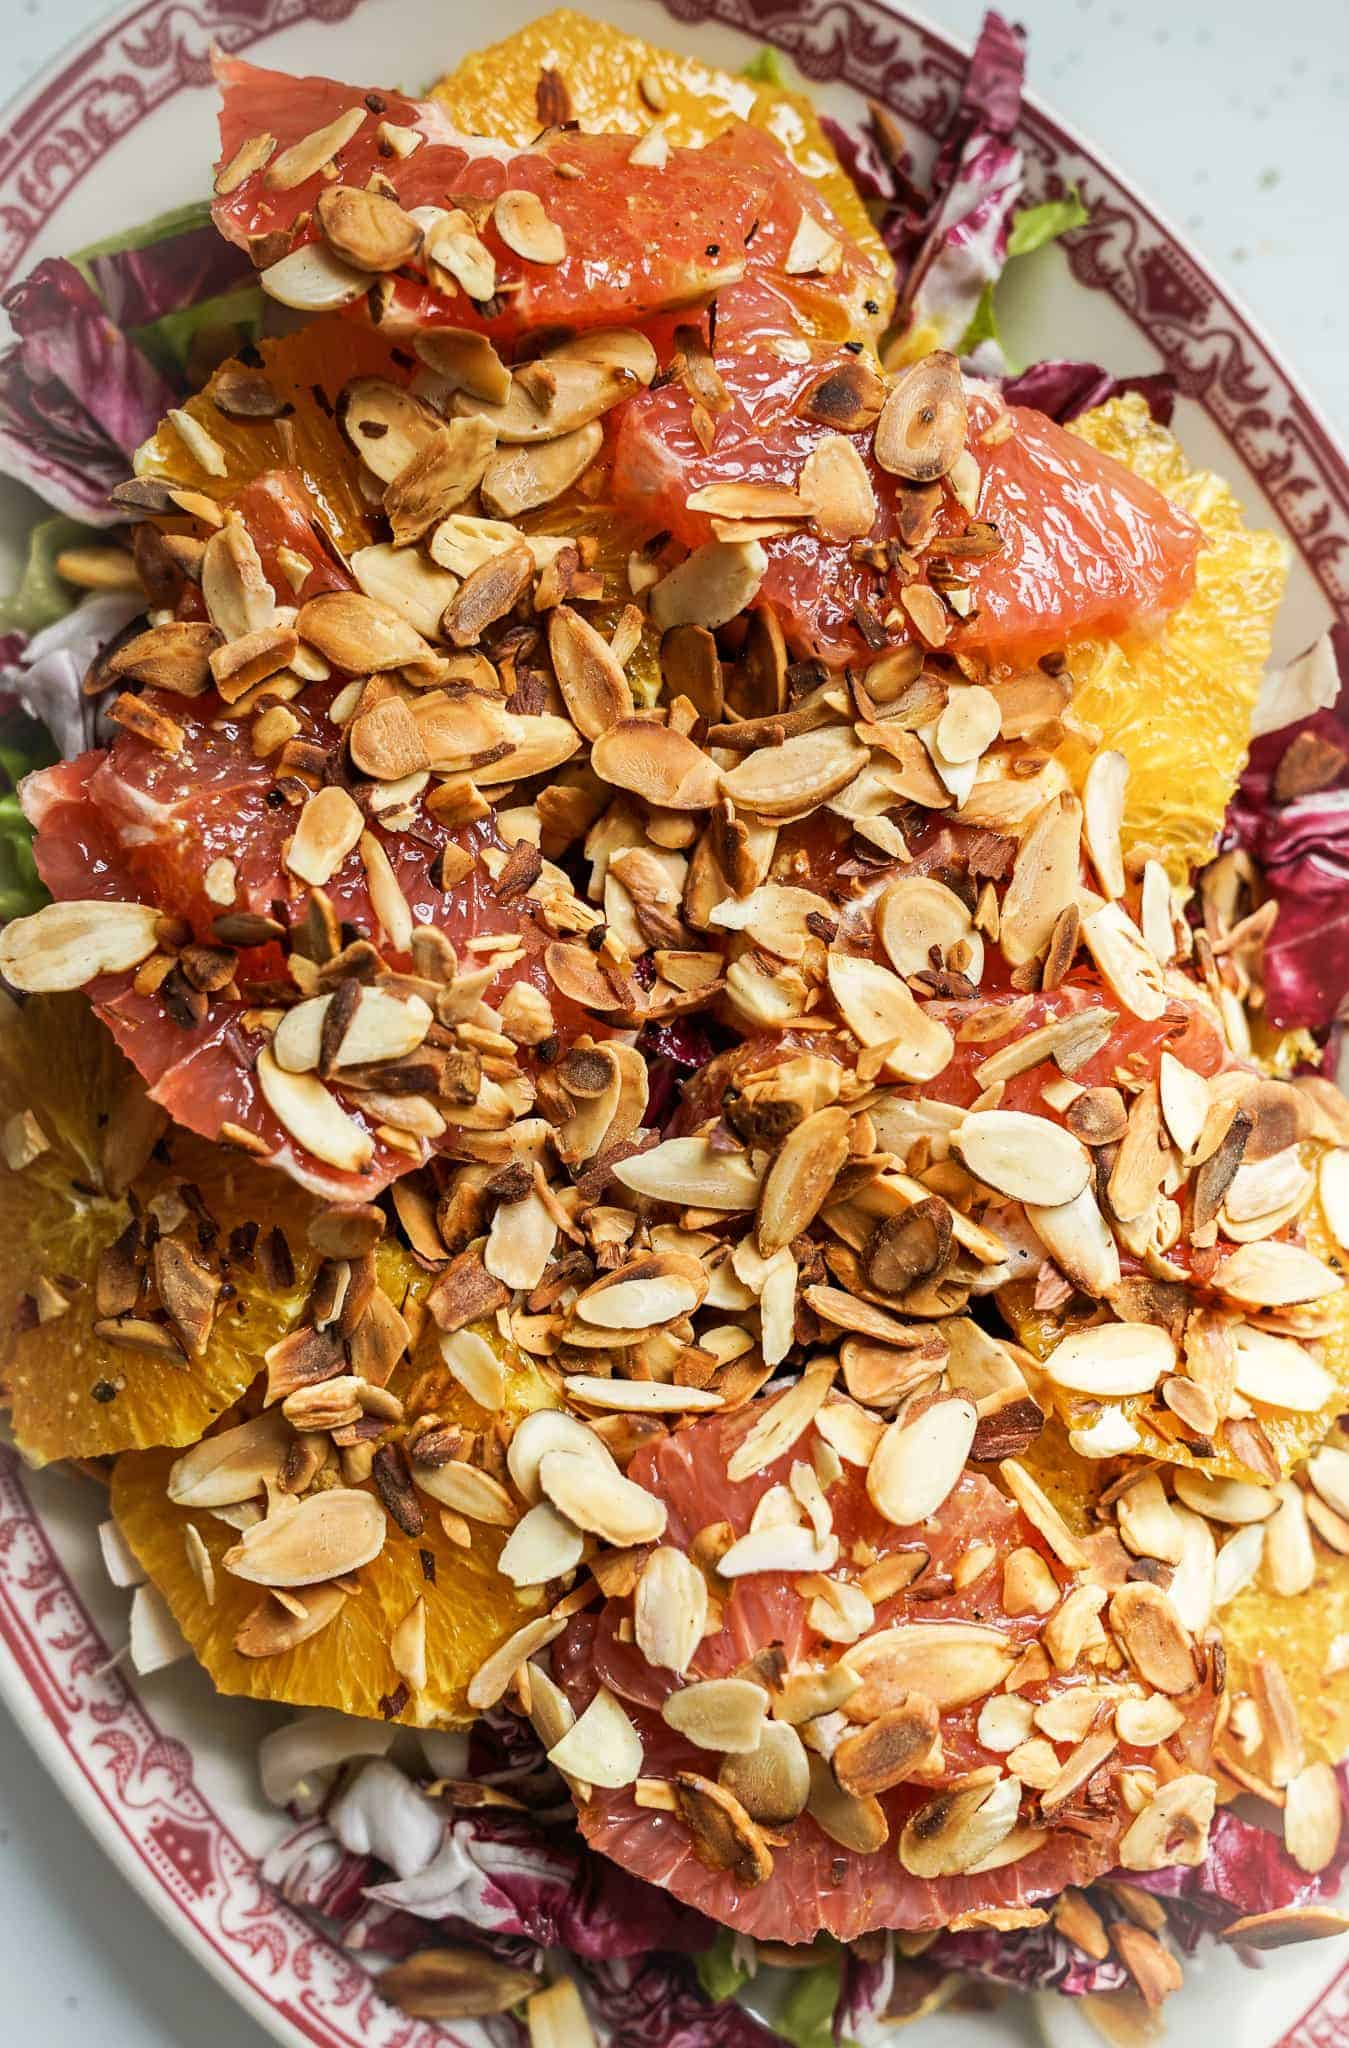 Oval platter of endive radicchio salad with oranges, grapefruit, and almonds